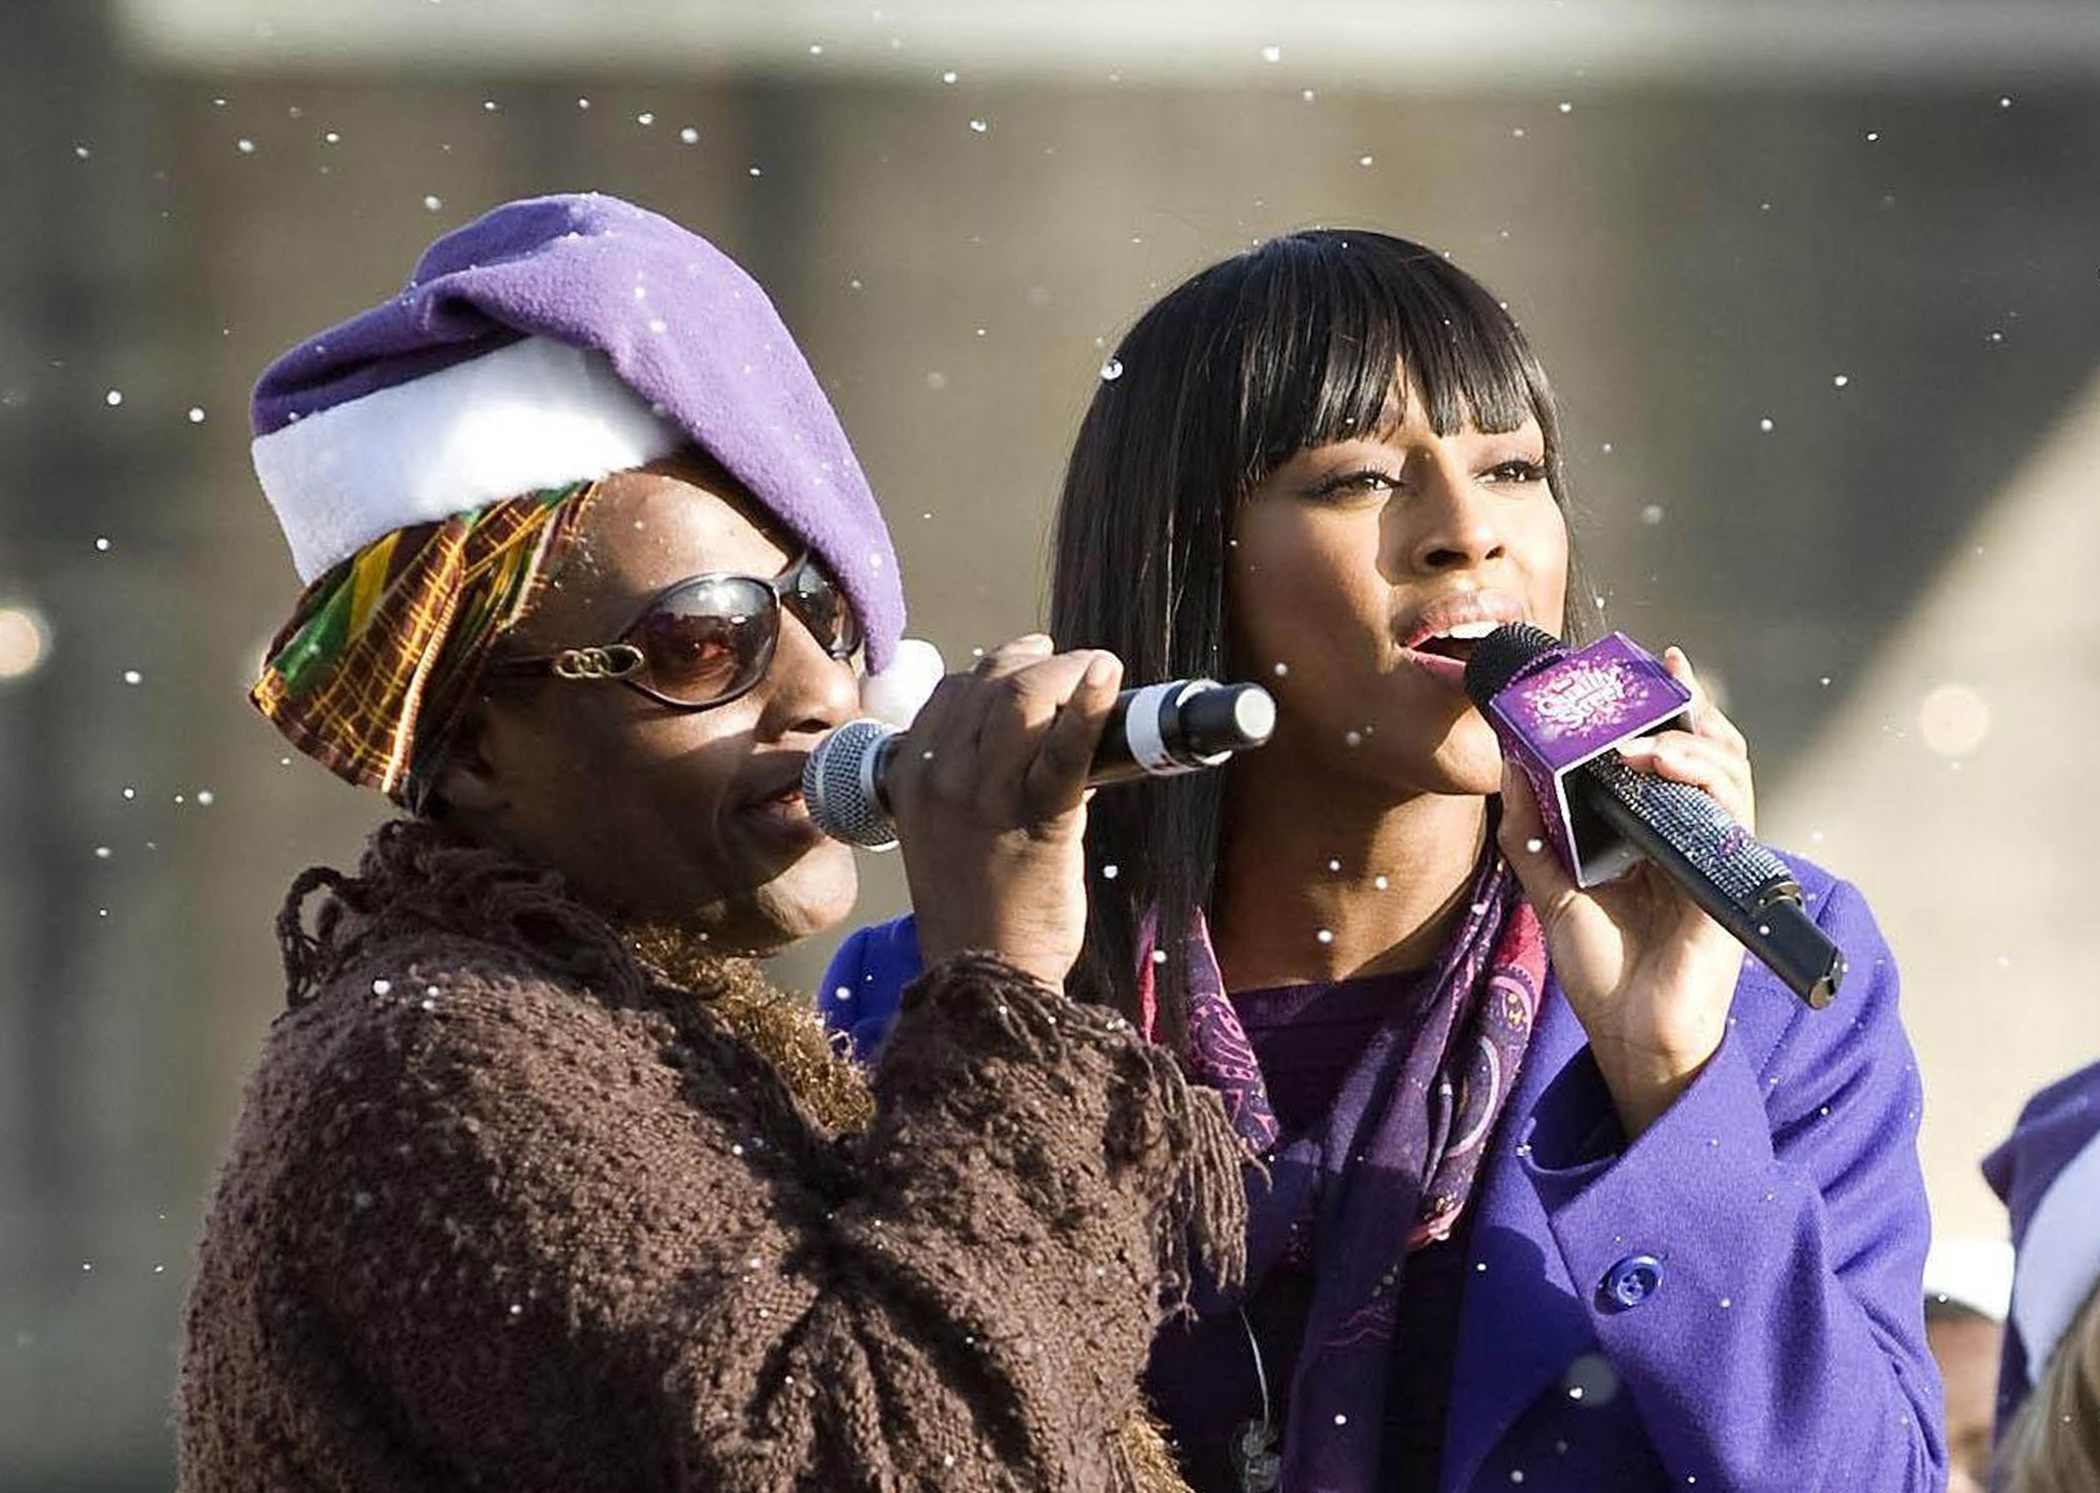 Alexandra Burke singing with her mother Melissa Bell, who was a member of the Grammy-winning group, Soul II Soul. (Matt Crossick/PA